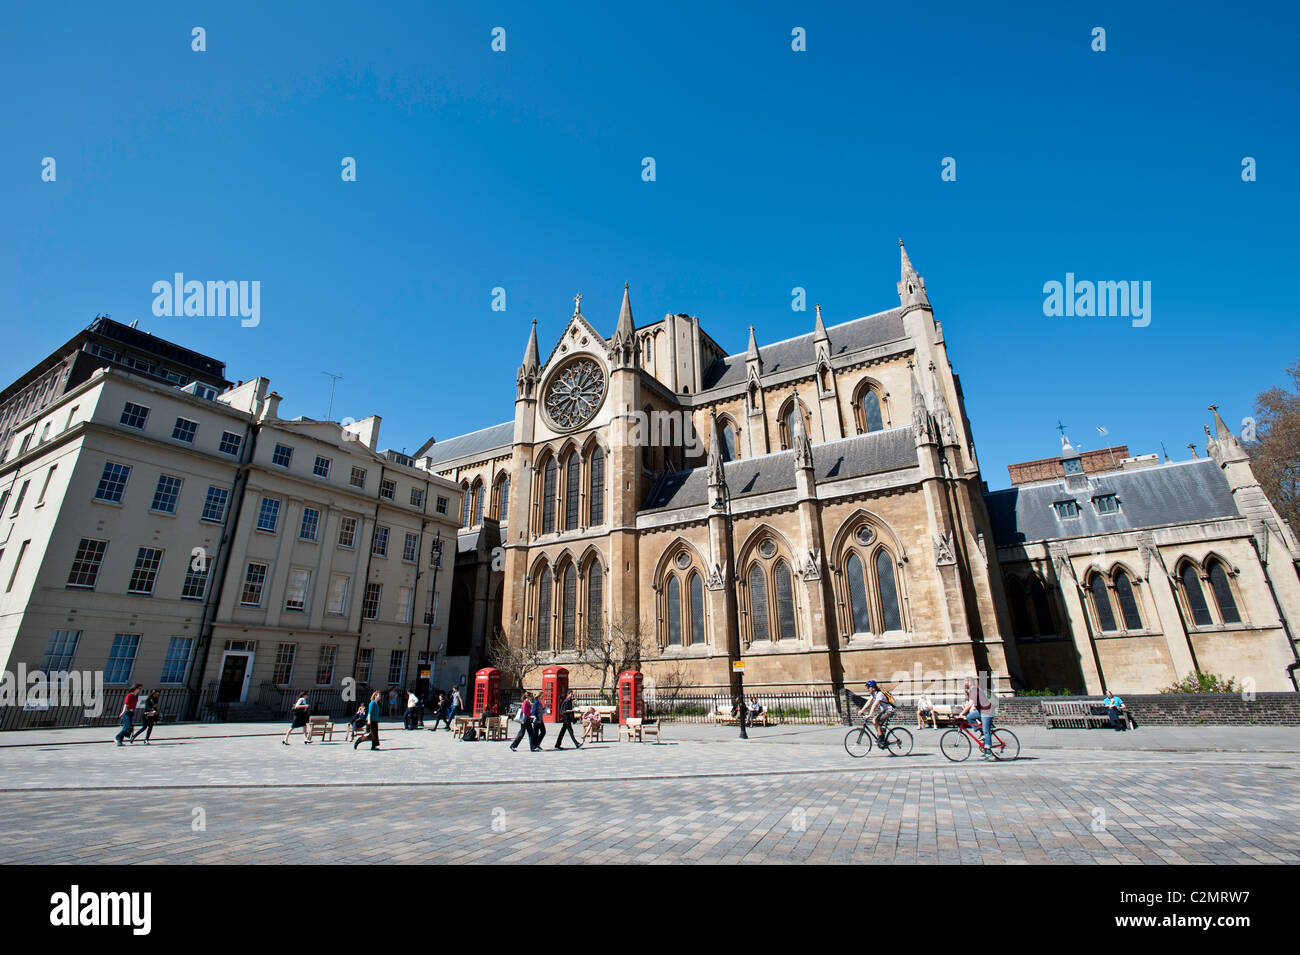 Church of Christ the King, Bloomsbury, United Kingdom - Stock Image